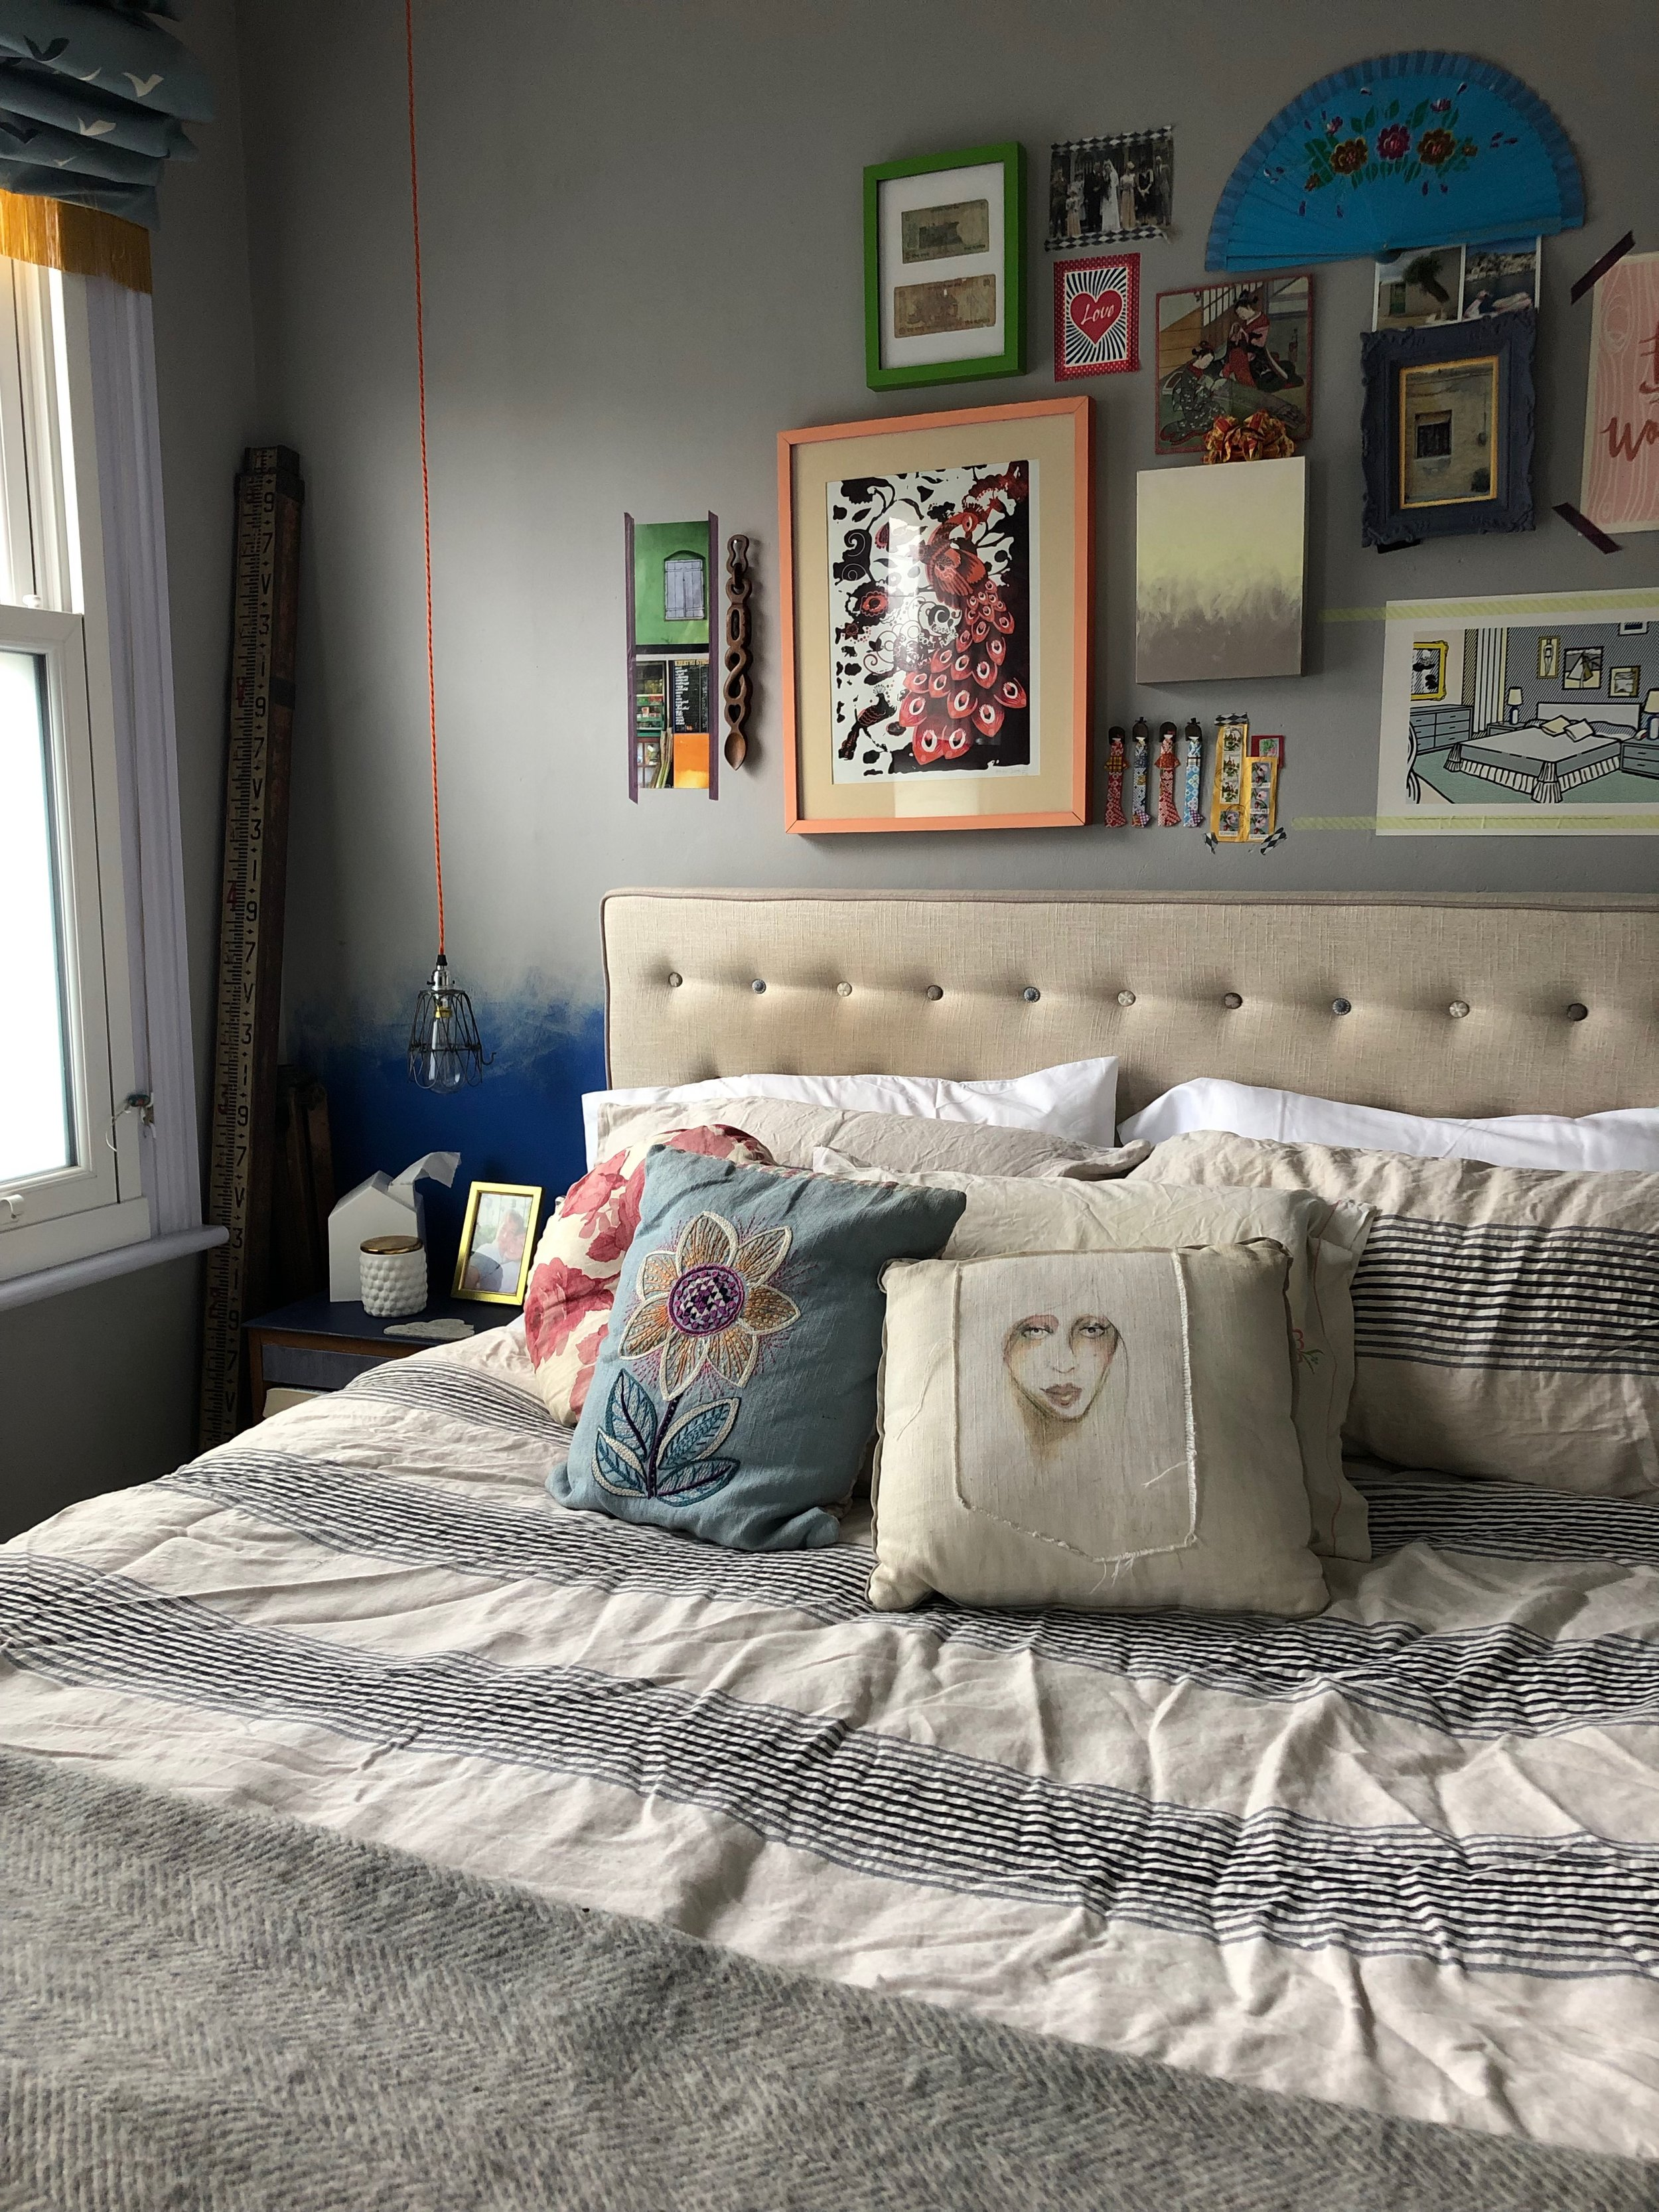 My own bedroom, which occasionally serves as my office when I'm feeling lazy (photo ©  Joanna Thornhill )